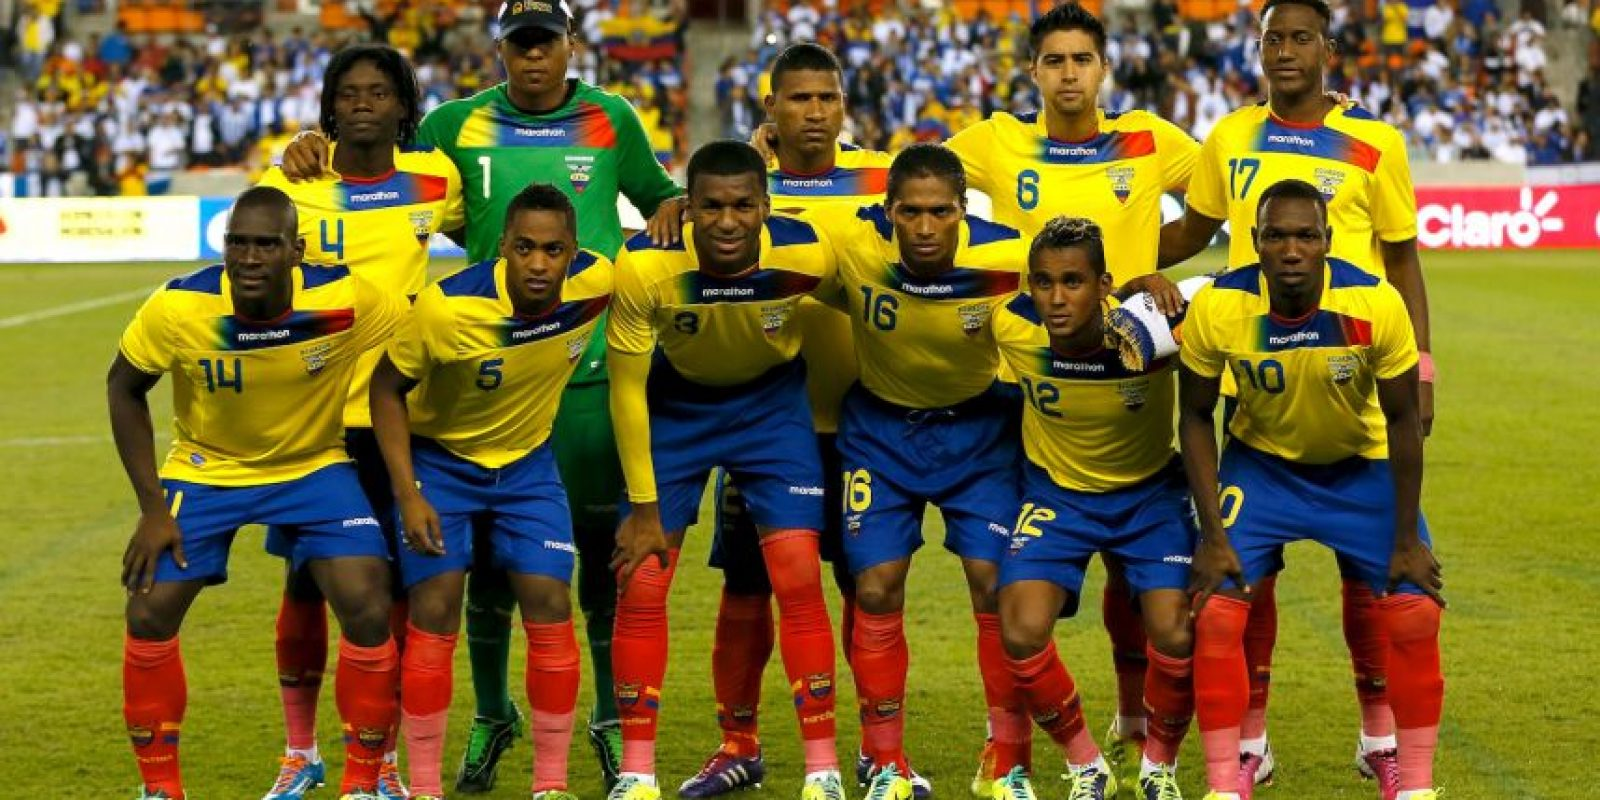 2. Ecuador Foto: Getty Images